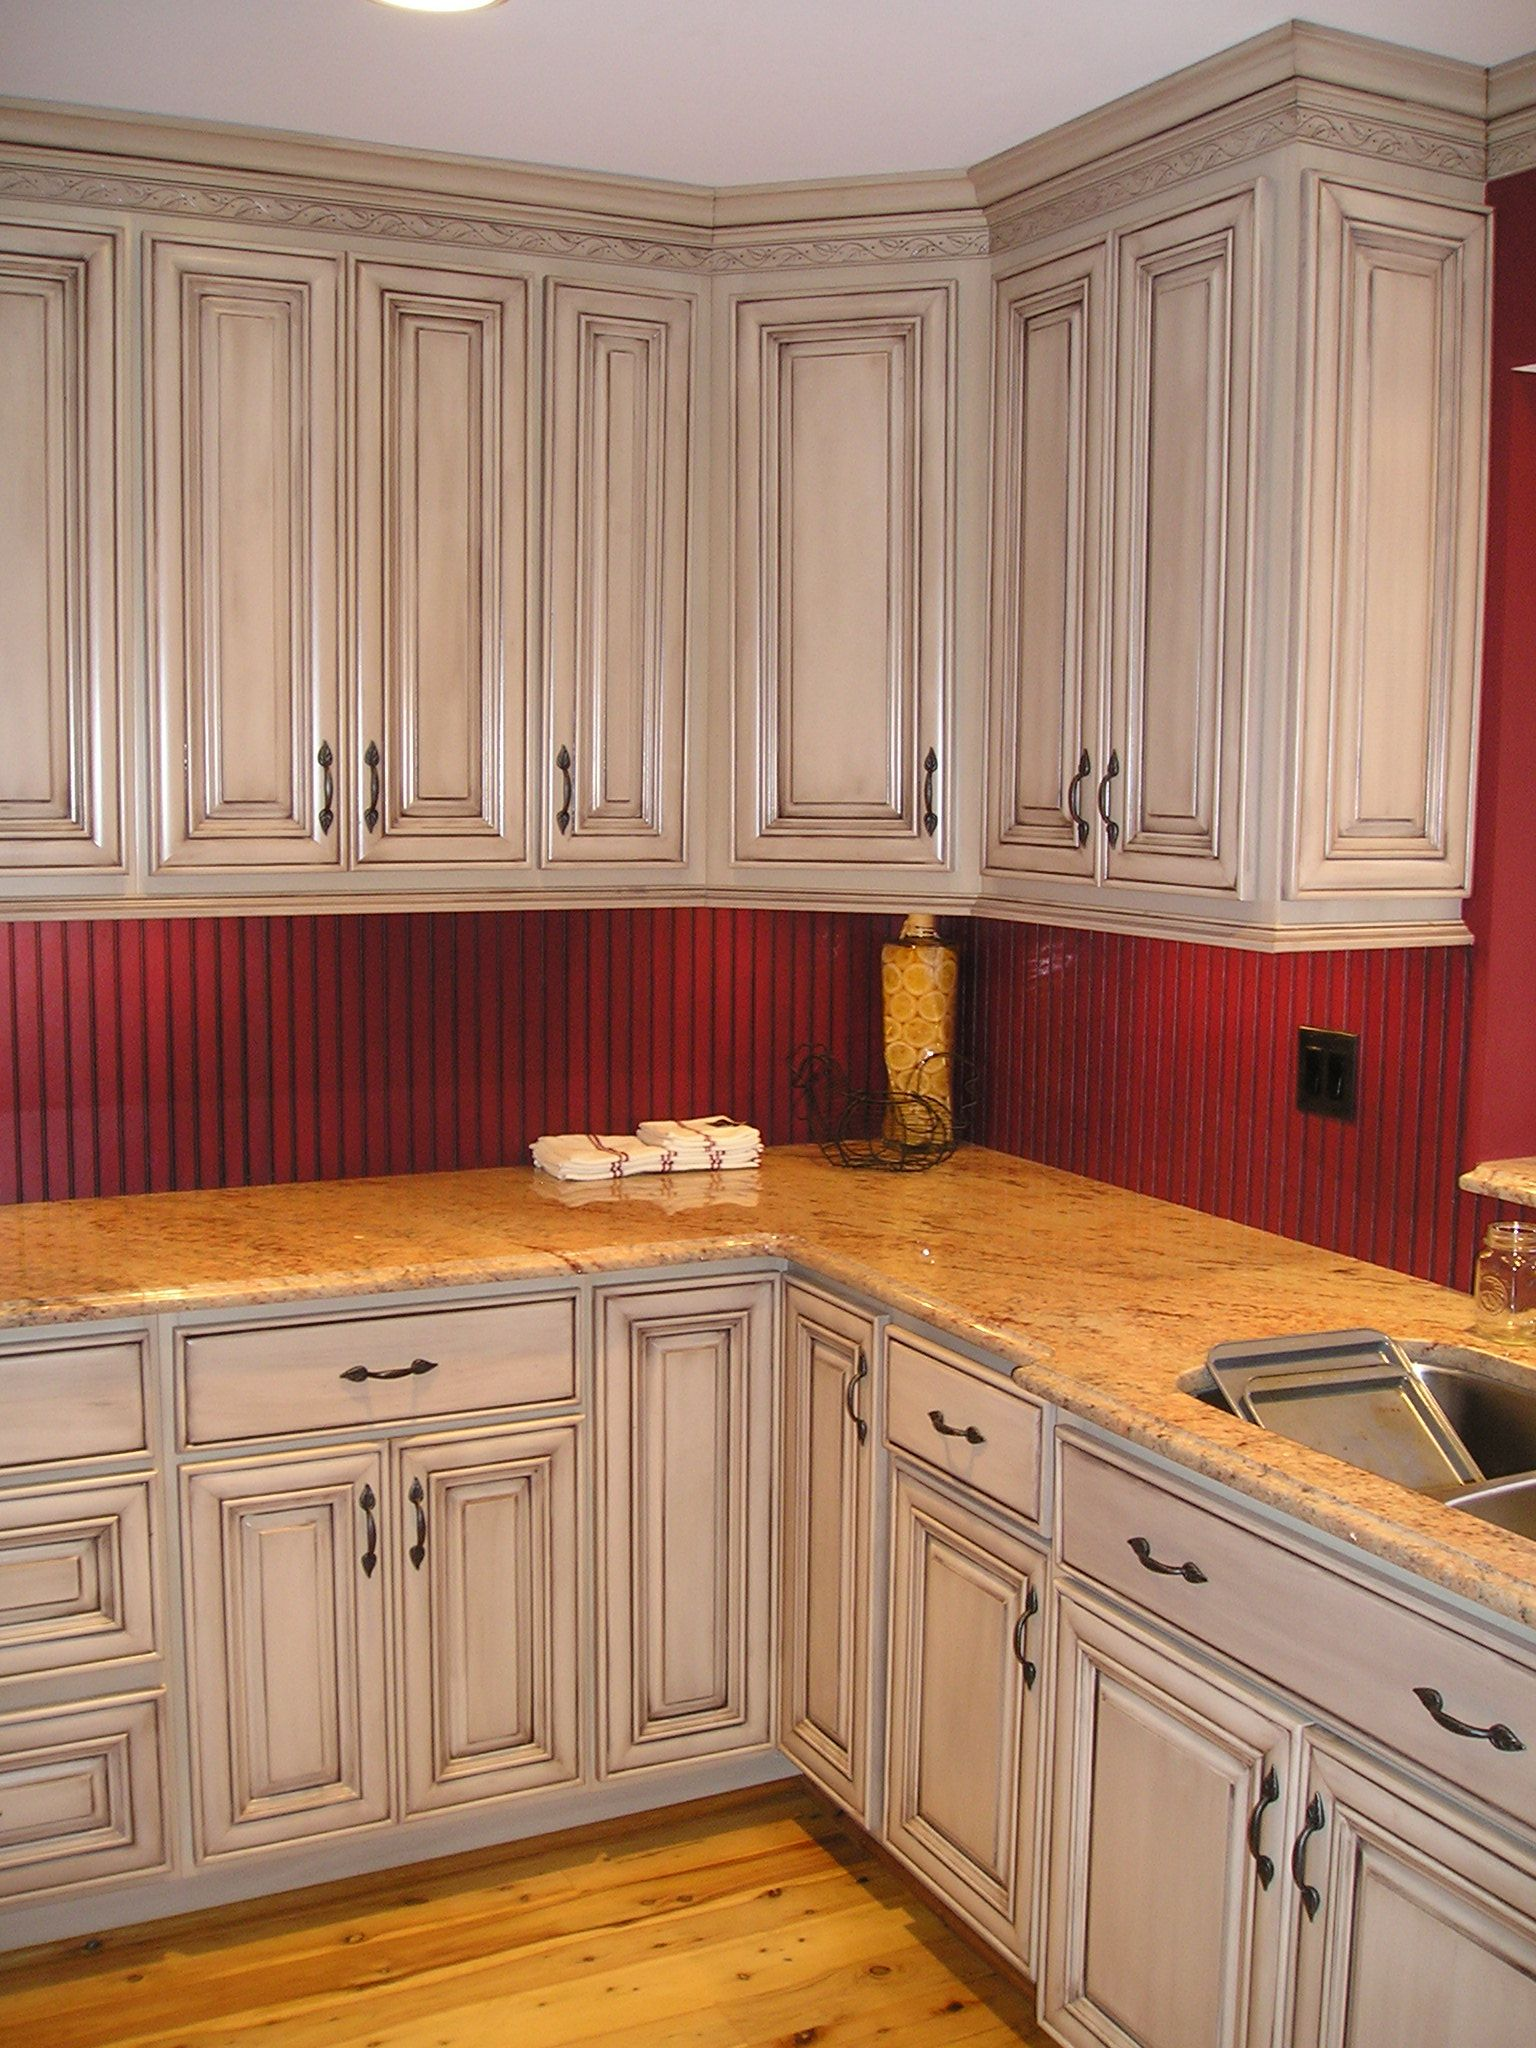 How To Glaze Kitchen Cabinets Antique Look For Your Kitchen Kitchen Dorks